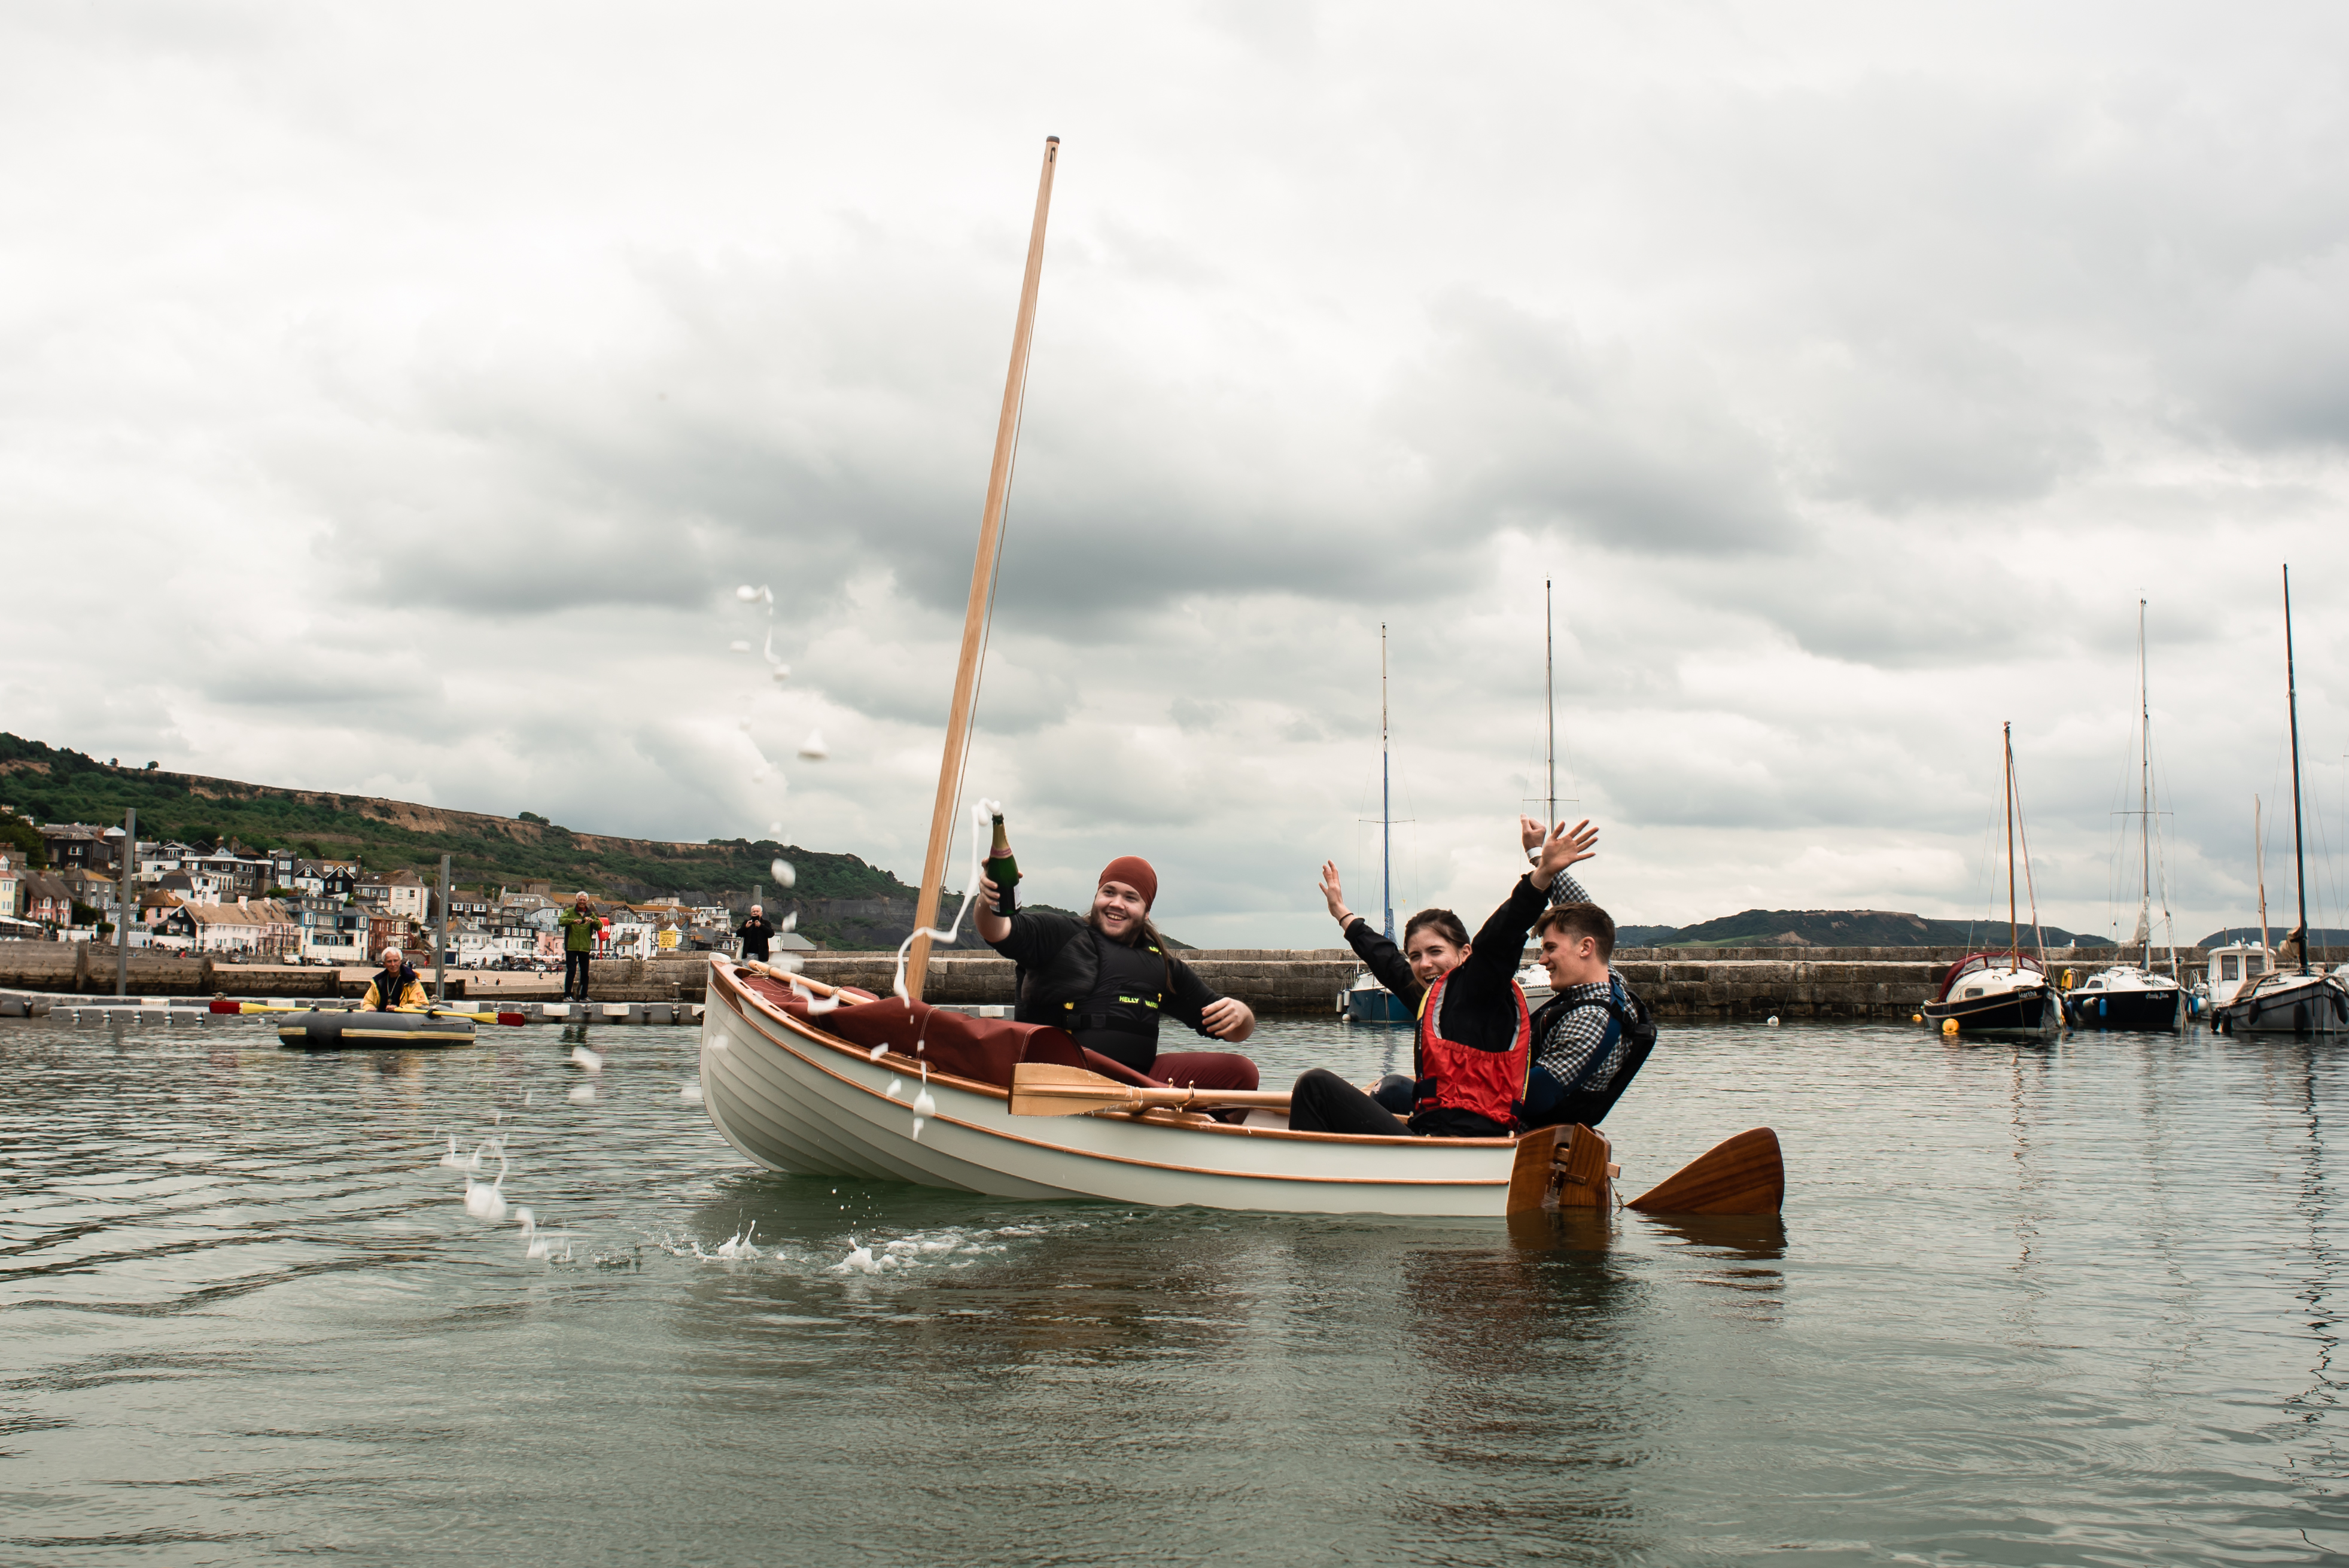 BBA June 2019 (c) Boat Building Academy